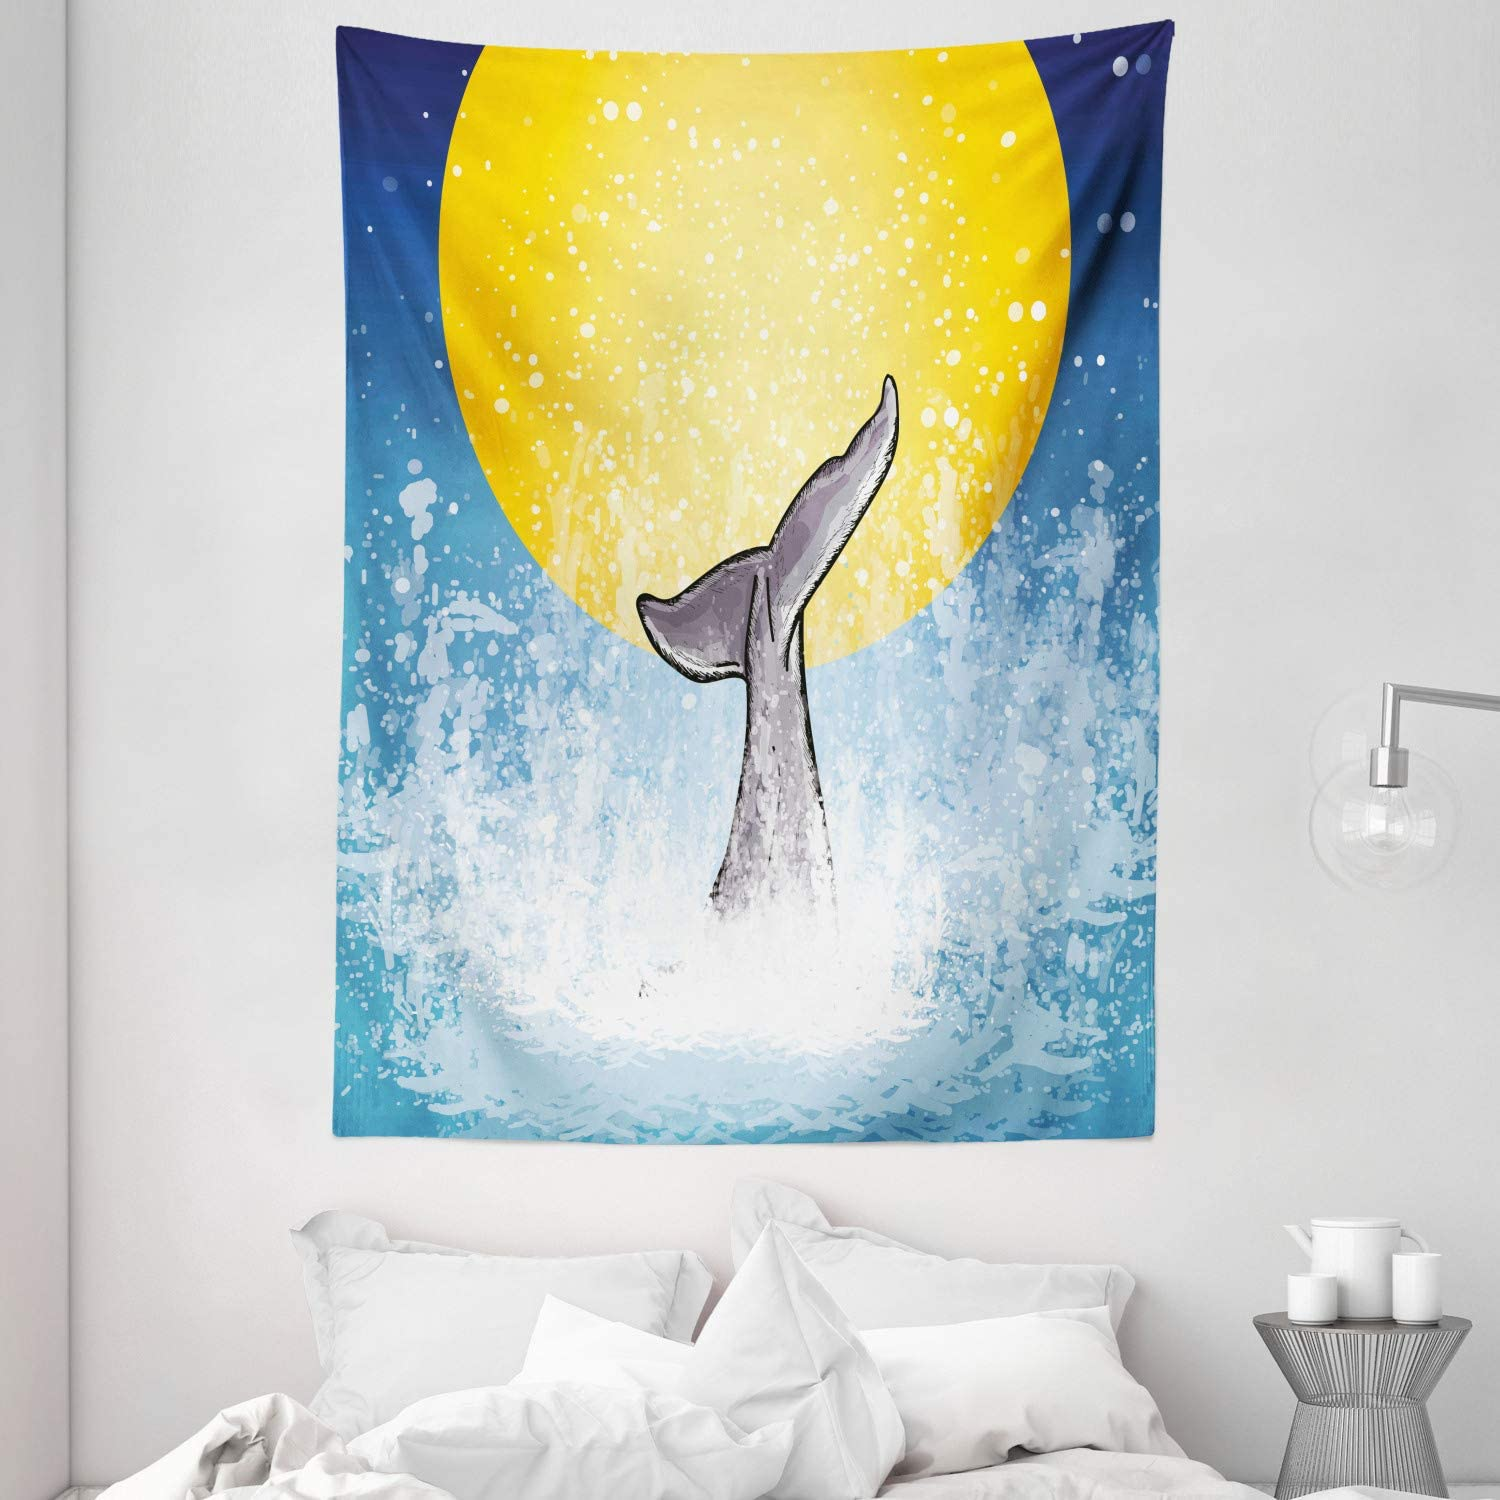 Amazon Com Ambesonne Whale Tapestry Whales Tail In Ocean On Full Moon Diving In Water Swimmer Marine Animal Print Wall Hanging For Bedroom Living Room Dorm Decor 40 X 60 Yellow Grey Blue